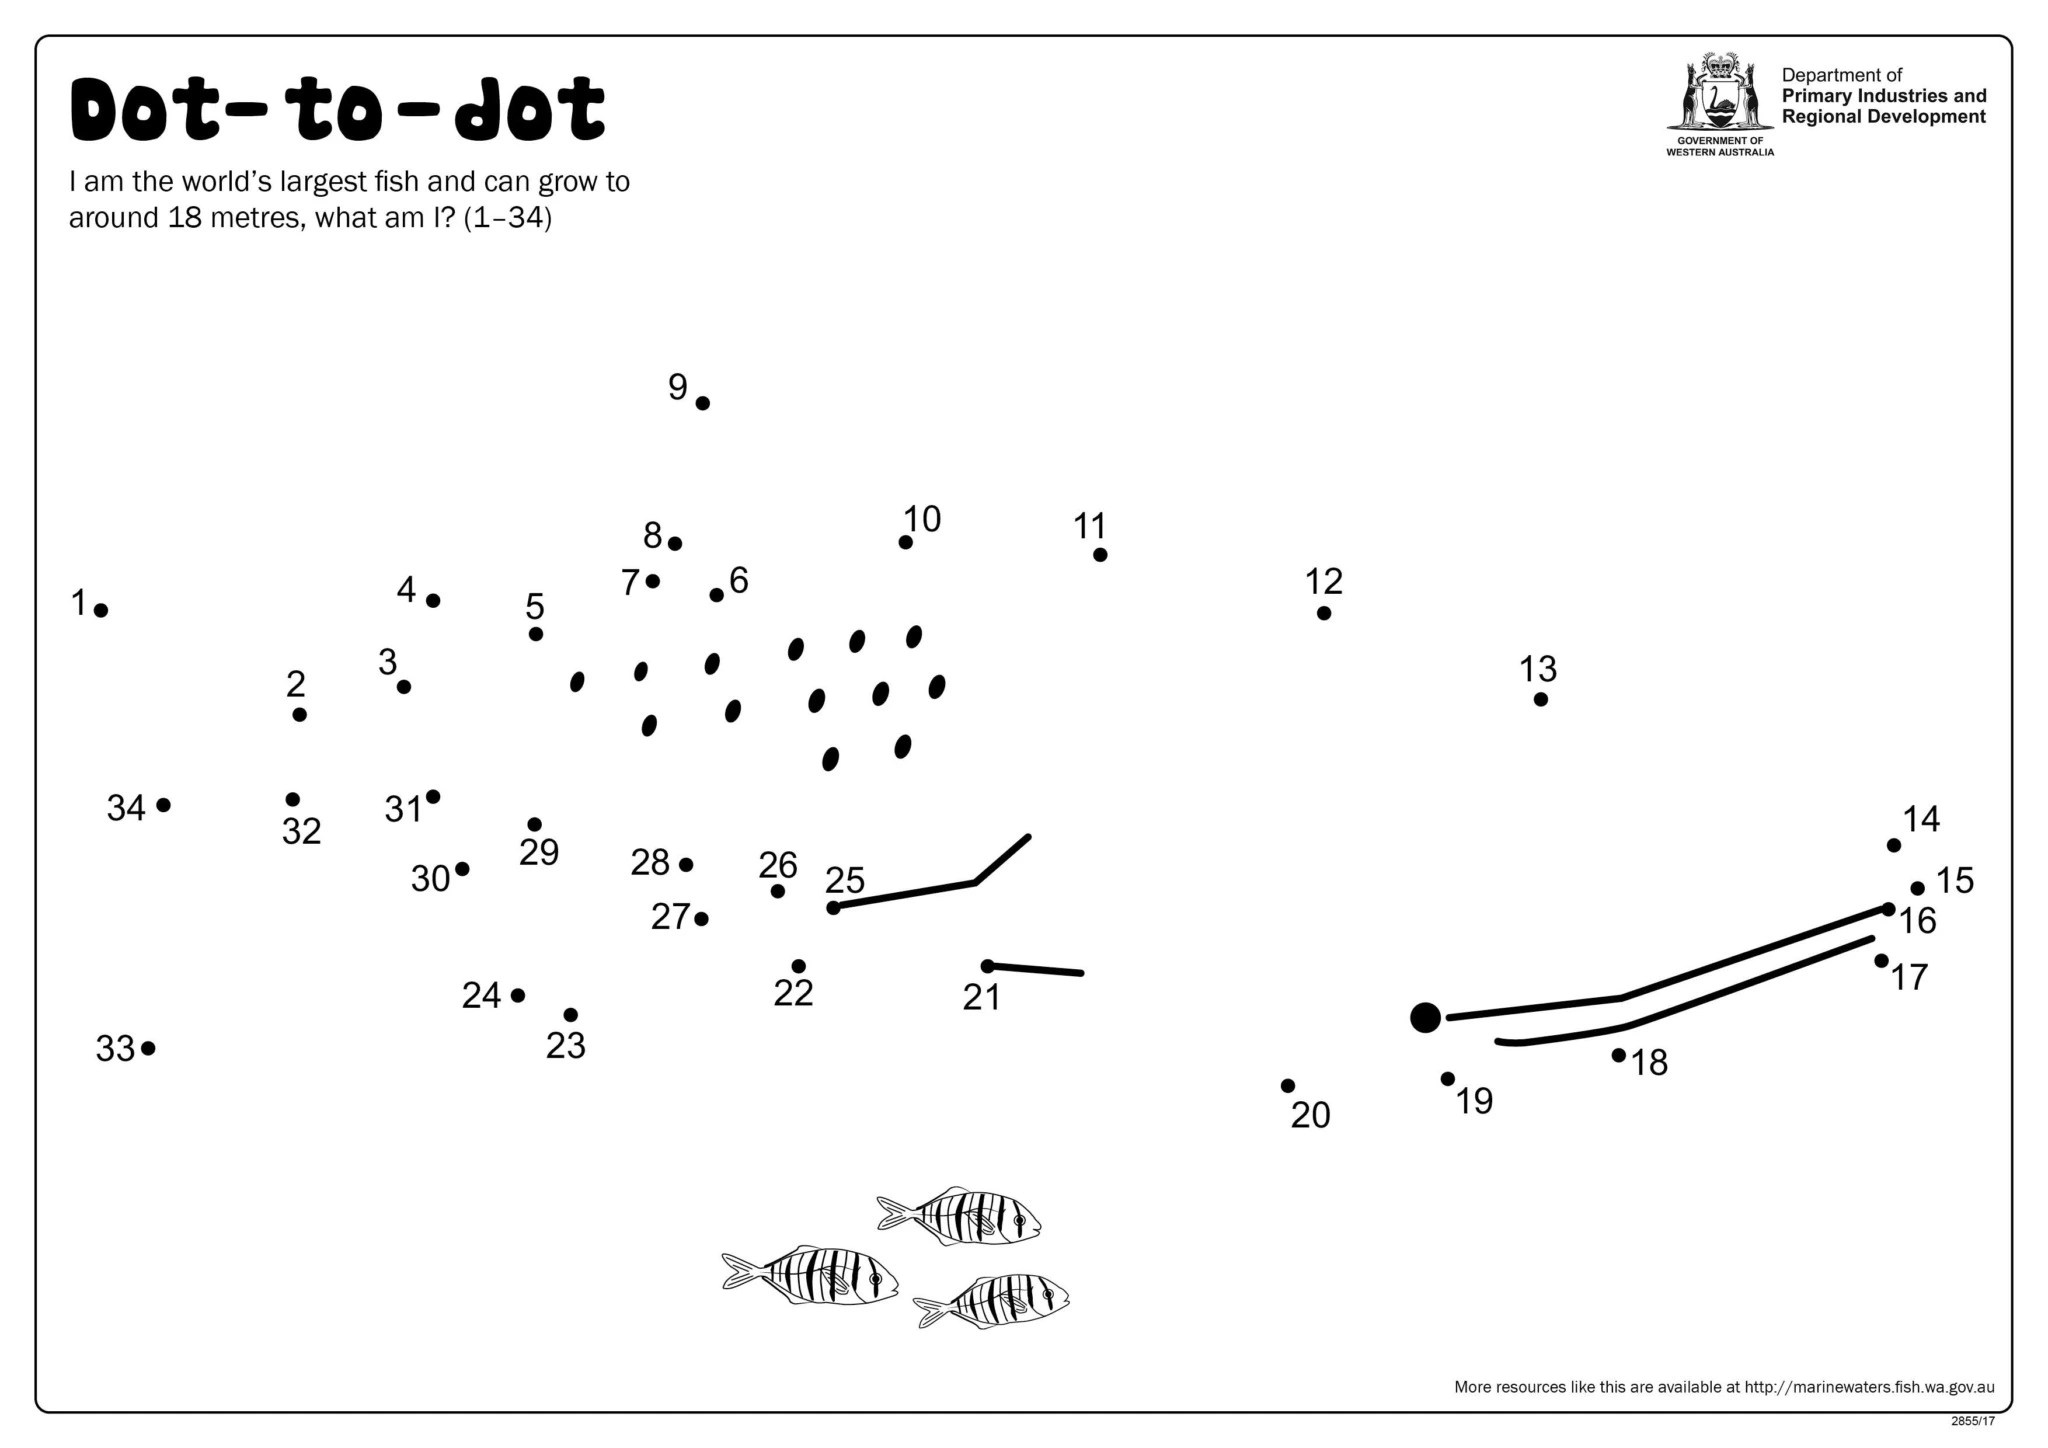 Fishy Fun Sheet Dot To Dot Whaleshark Department Of